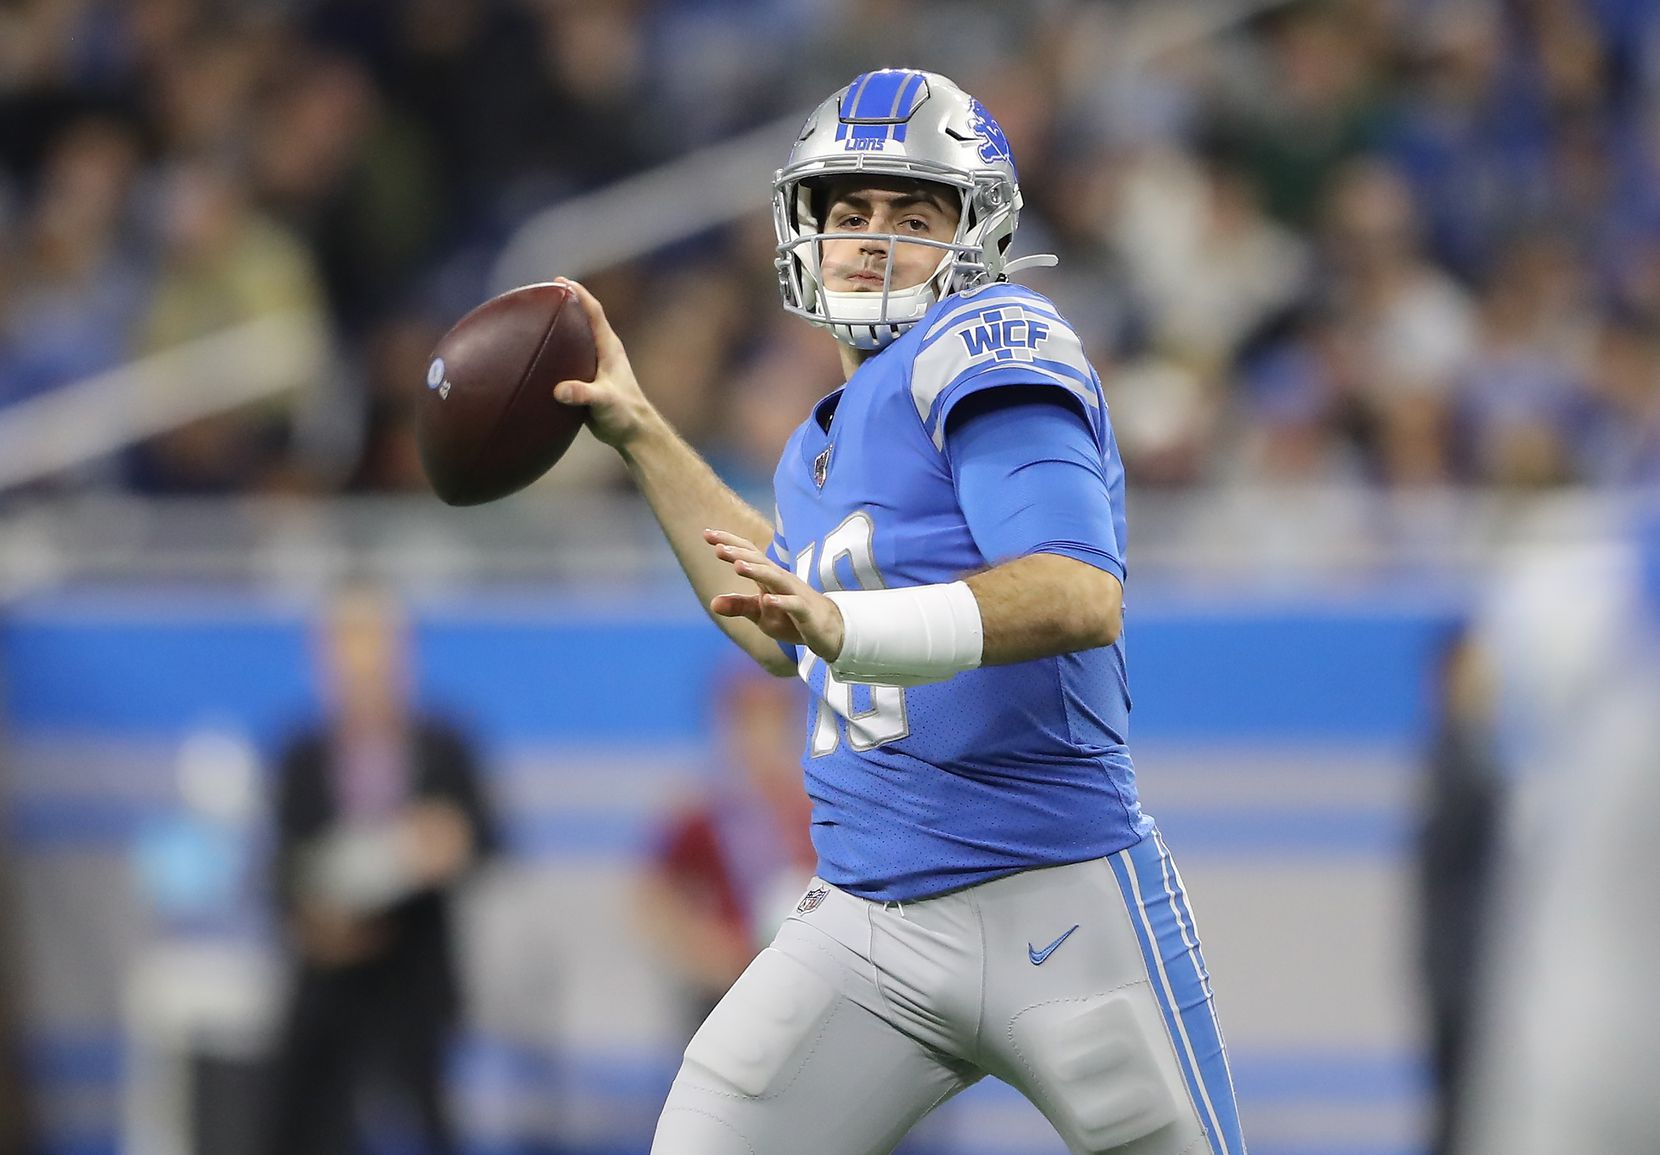 Detroit Lions quarterback David Blough in action against the Green Bay Packers at Ford Field in Detroit on December 29, 2019. (Rey Del Rio/Getty Images/TNS)